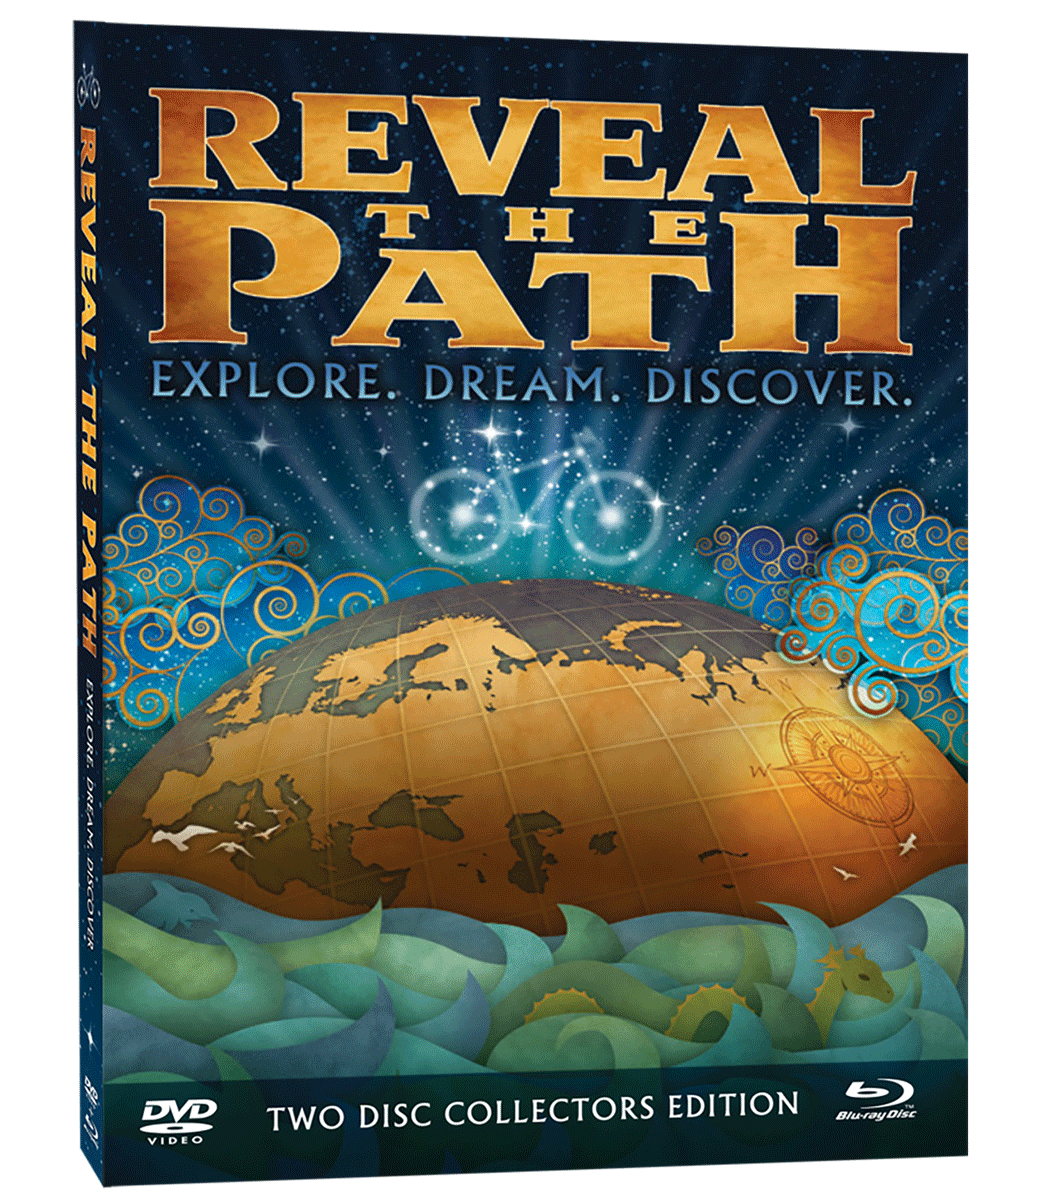 Reveal the Path DVD Blu-ray